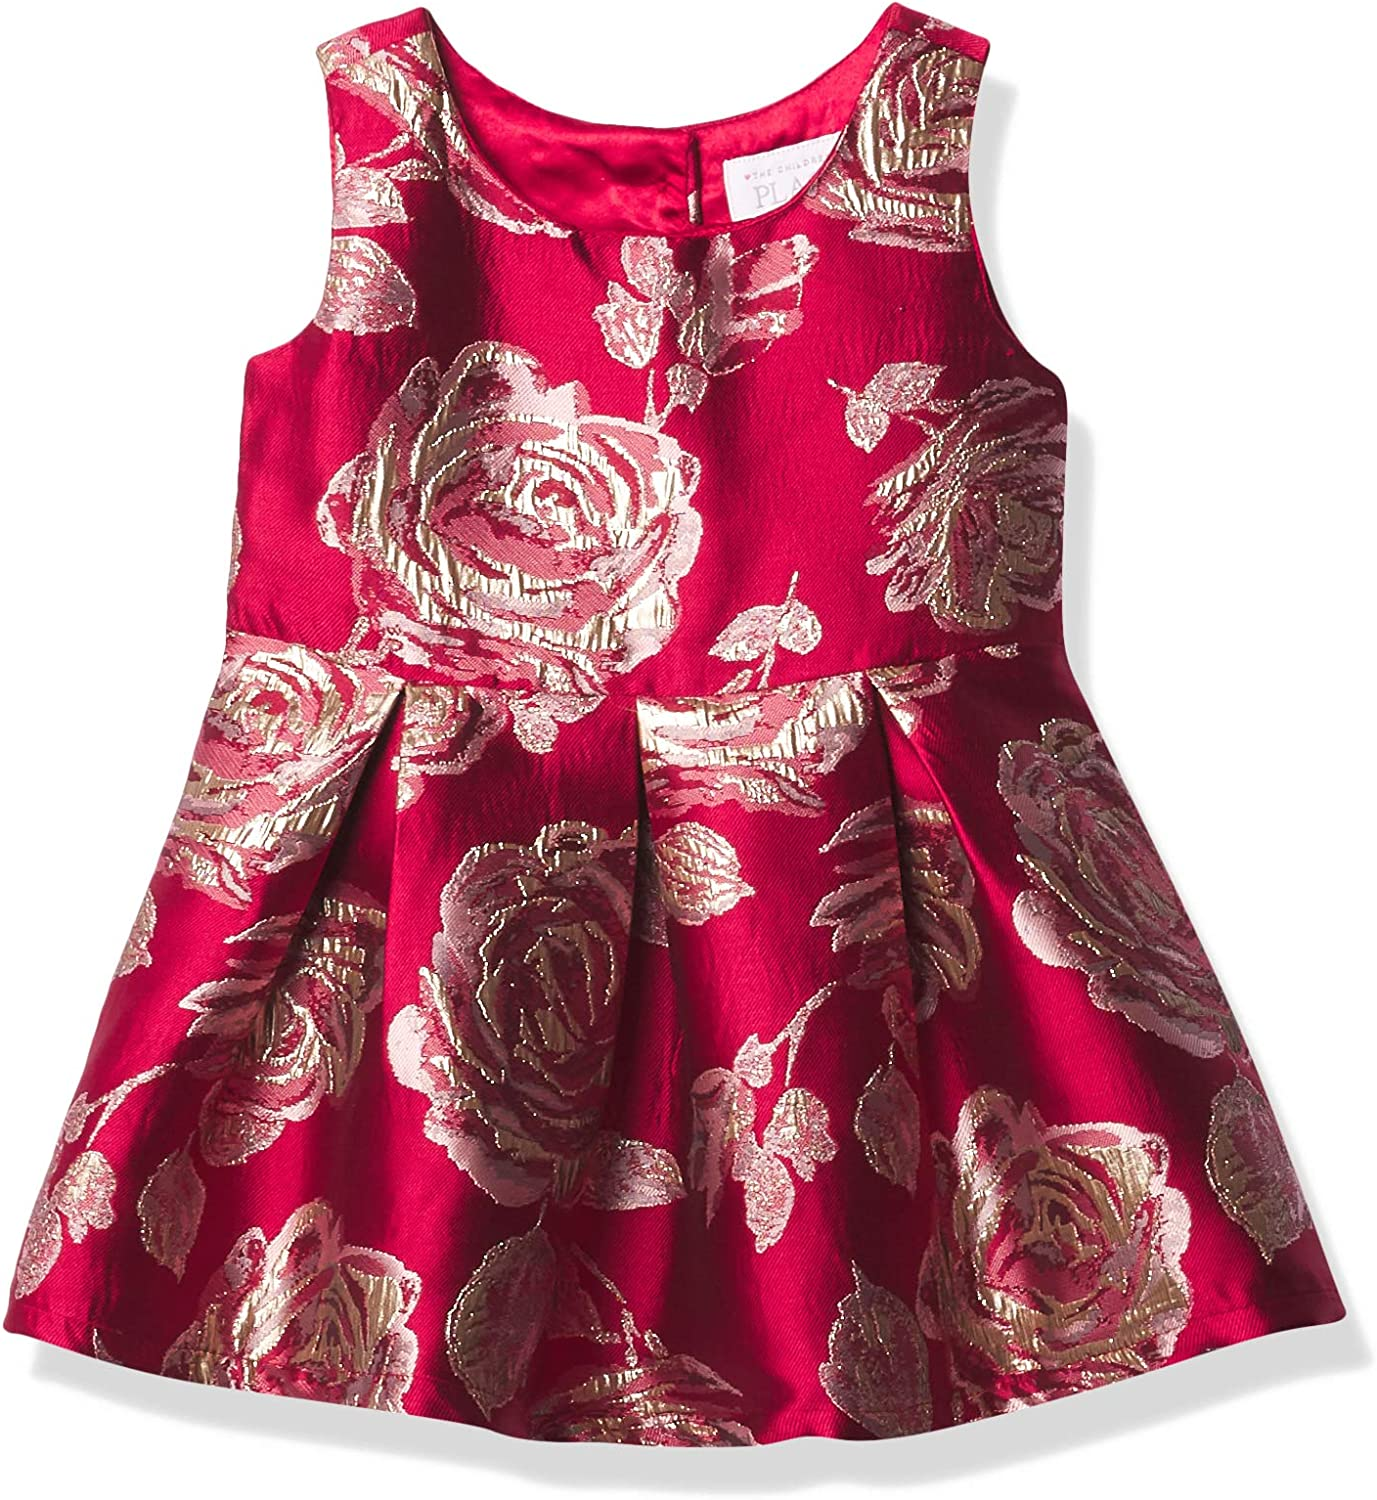 The Children's Place Girls' Toddler Mommy and Me Metallic Rose Jacquard Matching Dress